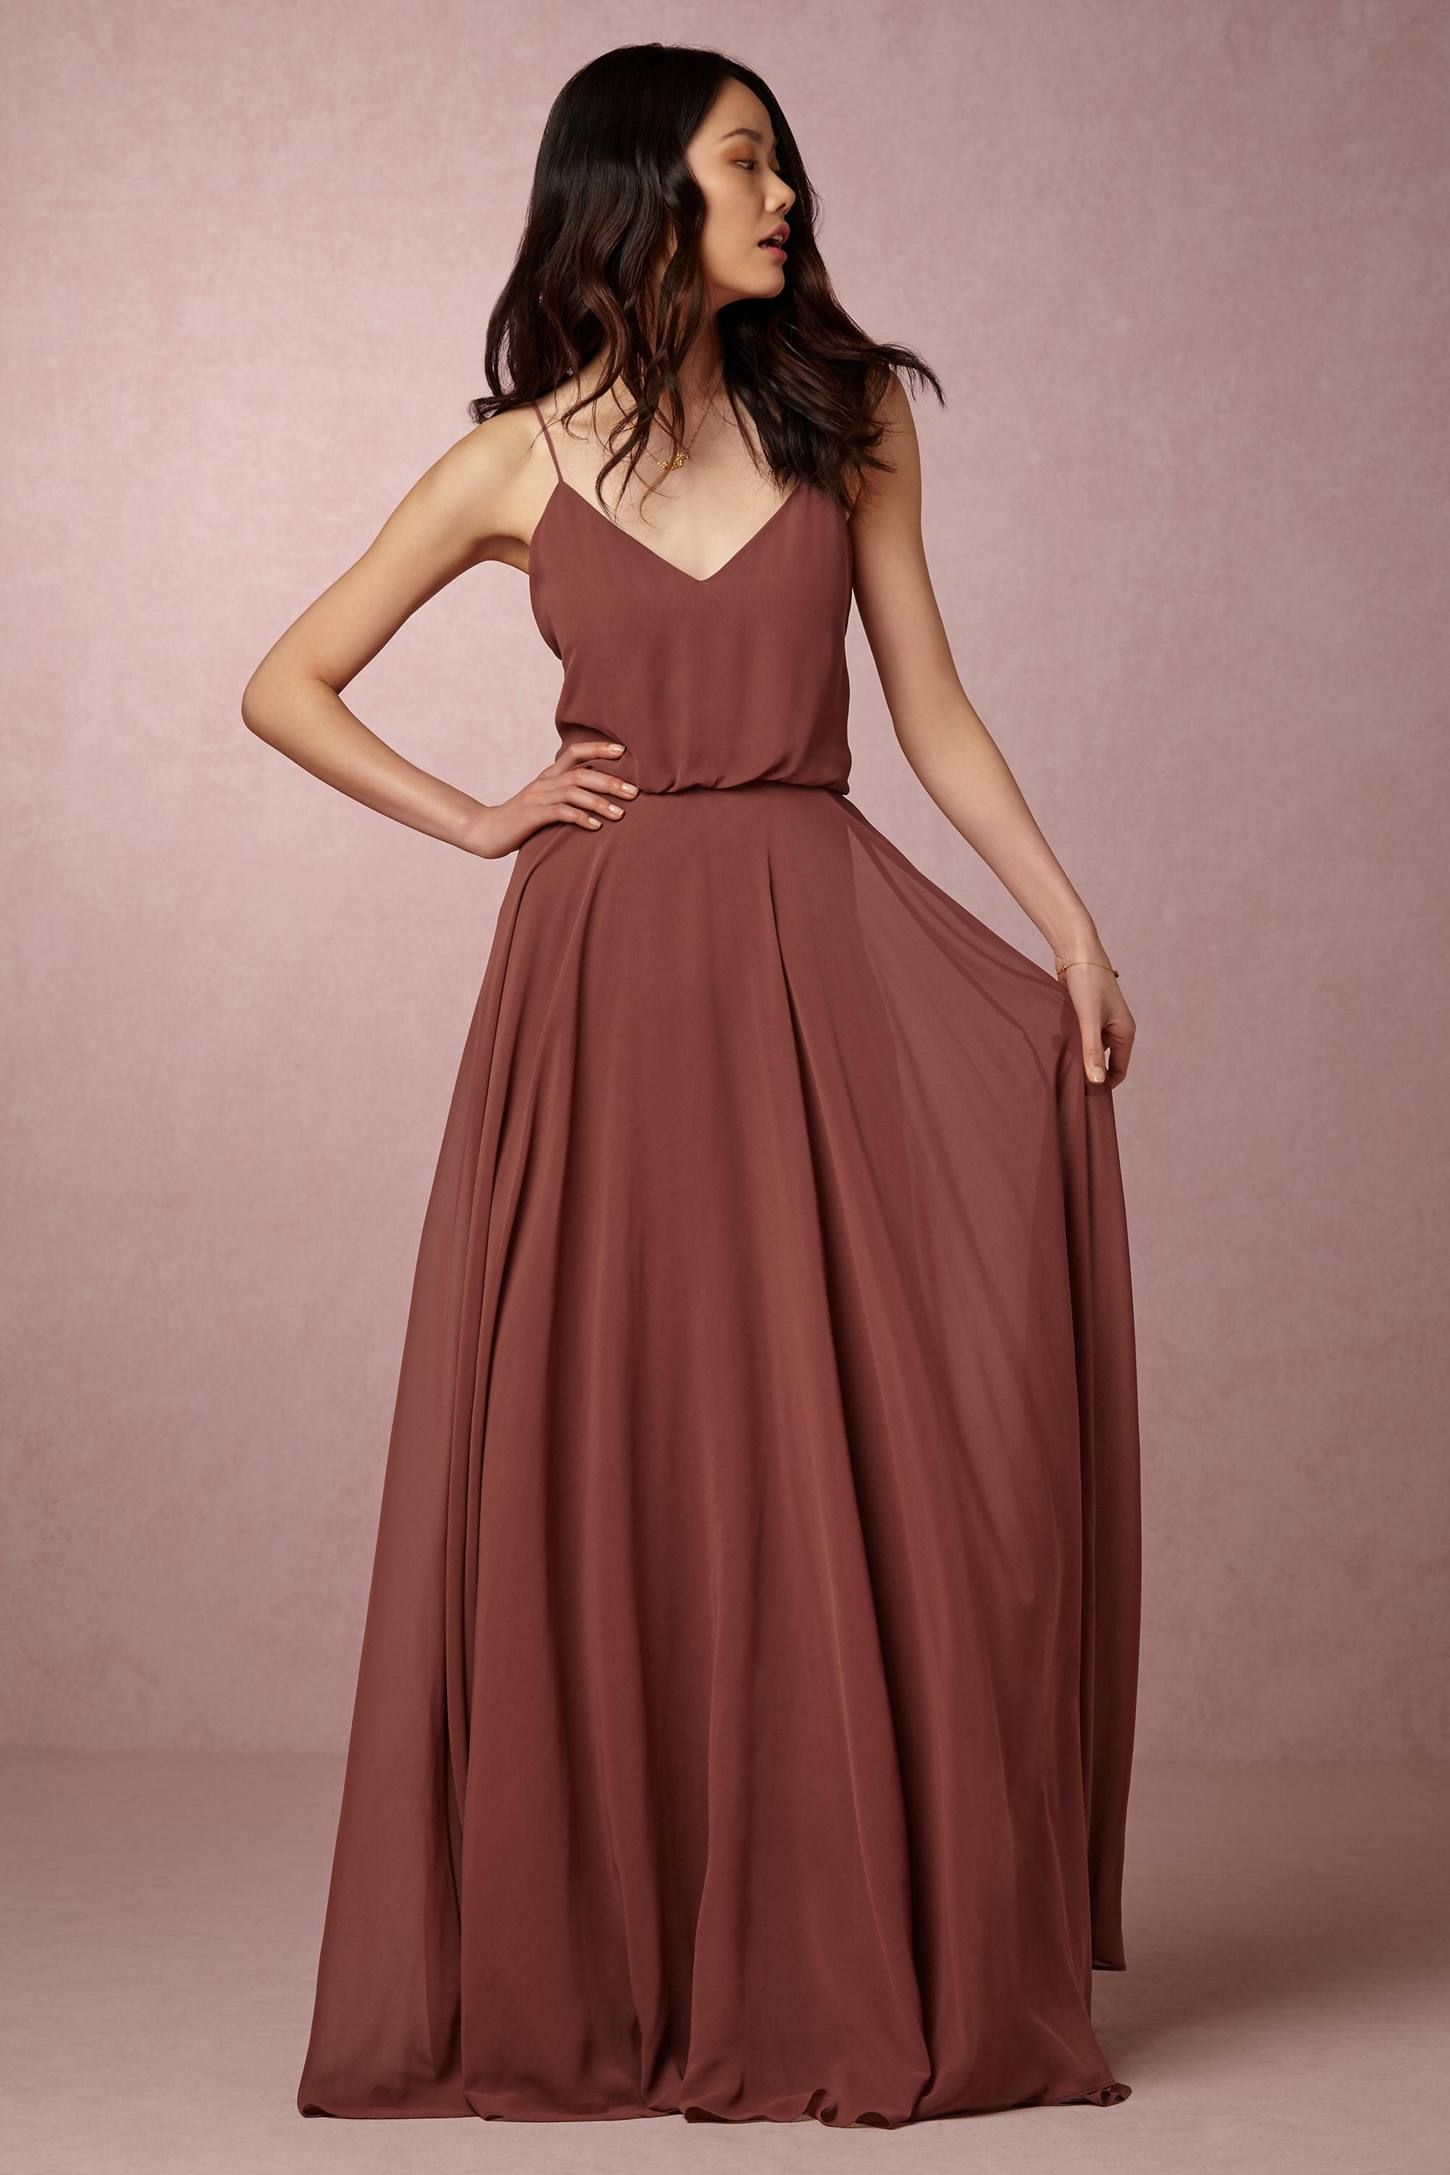 af58a871625aa Shop the Inesse Dress and more Anthropologie at Anthropologie today. Read  customer reviews, discover product details and more.